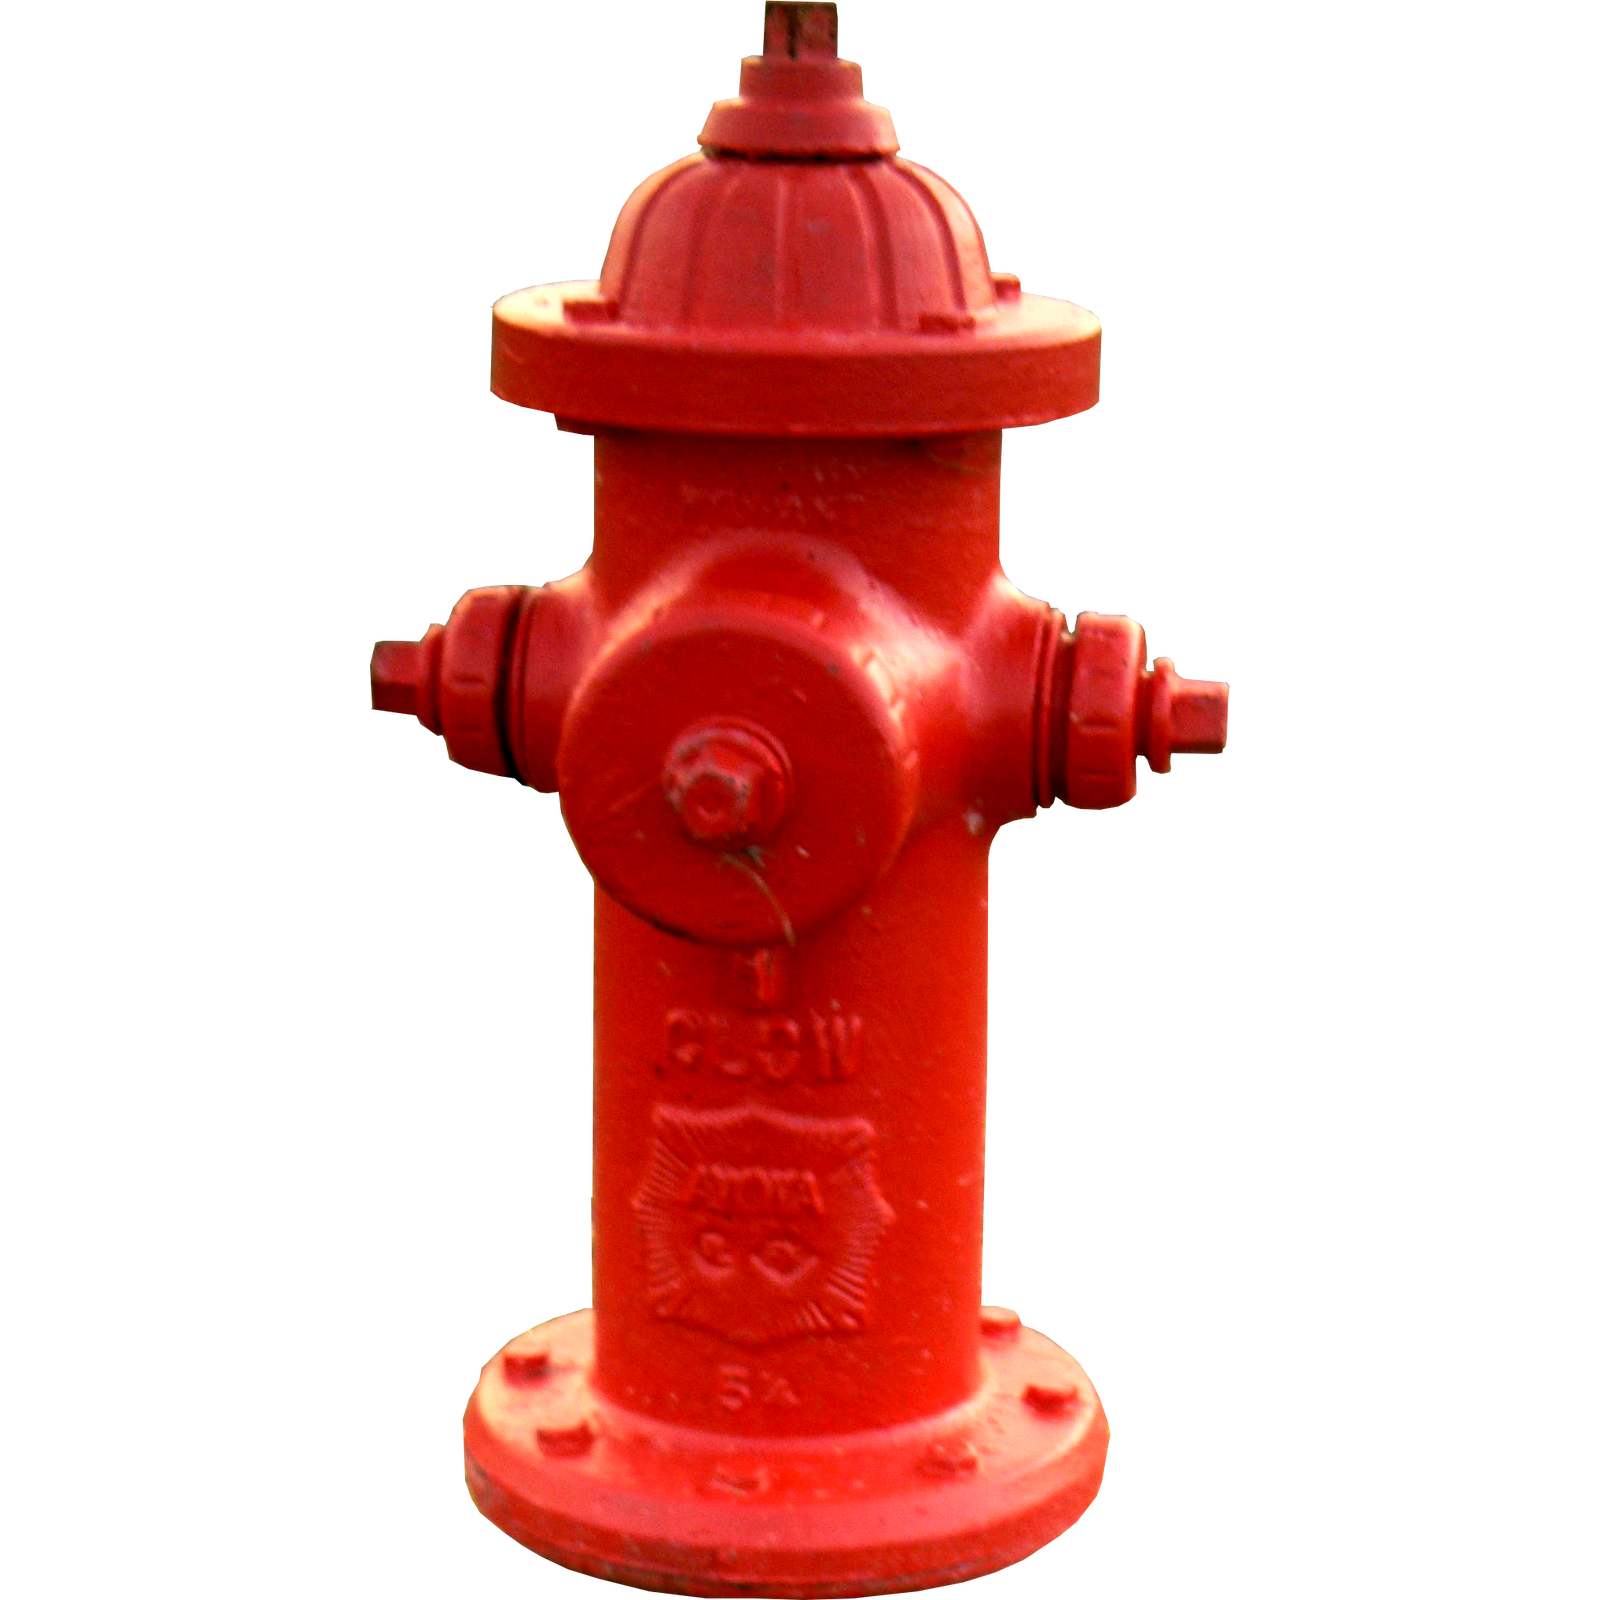 Thermowell Ss 316 moreover Valve Symbols besides Fire Safety furthermore Cigarette   Image furthermore Fire Hose Coupling. on fire hose valve